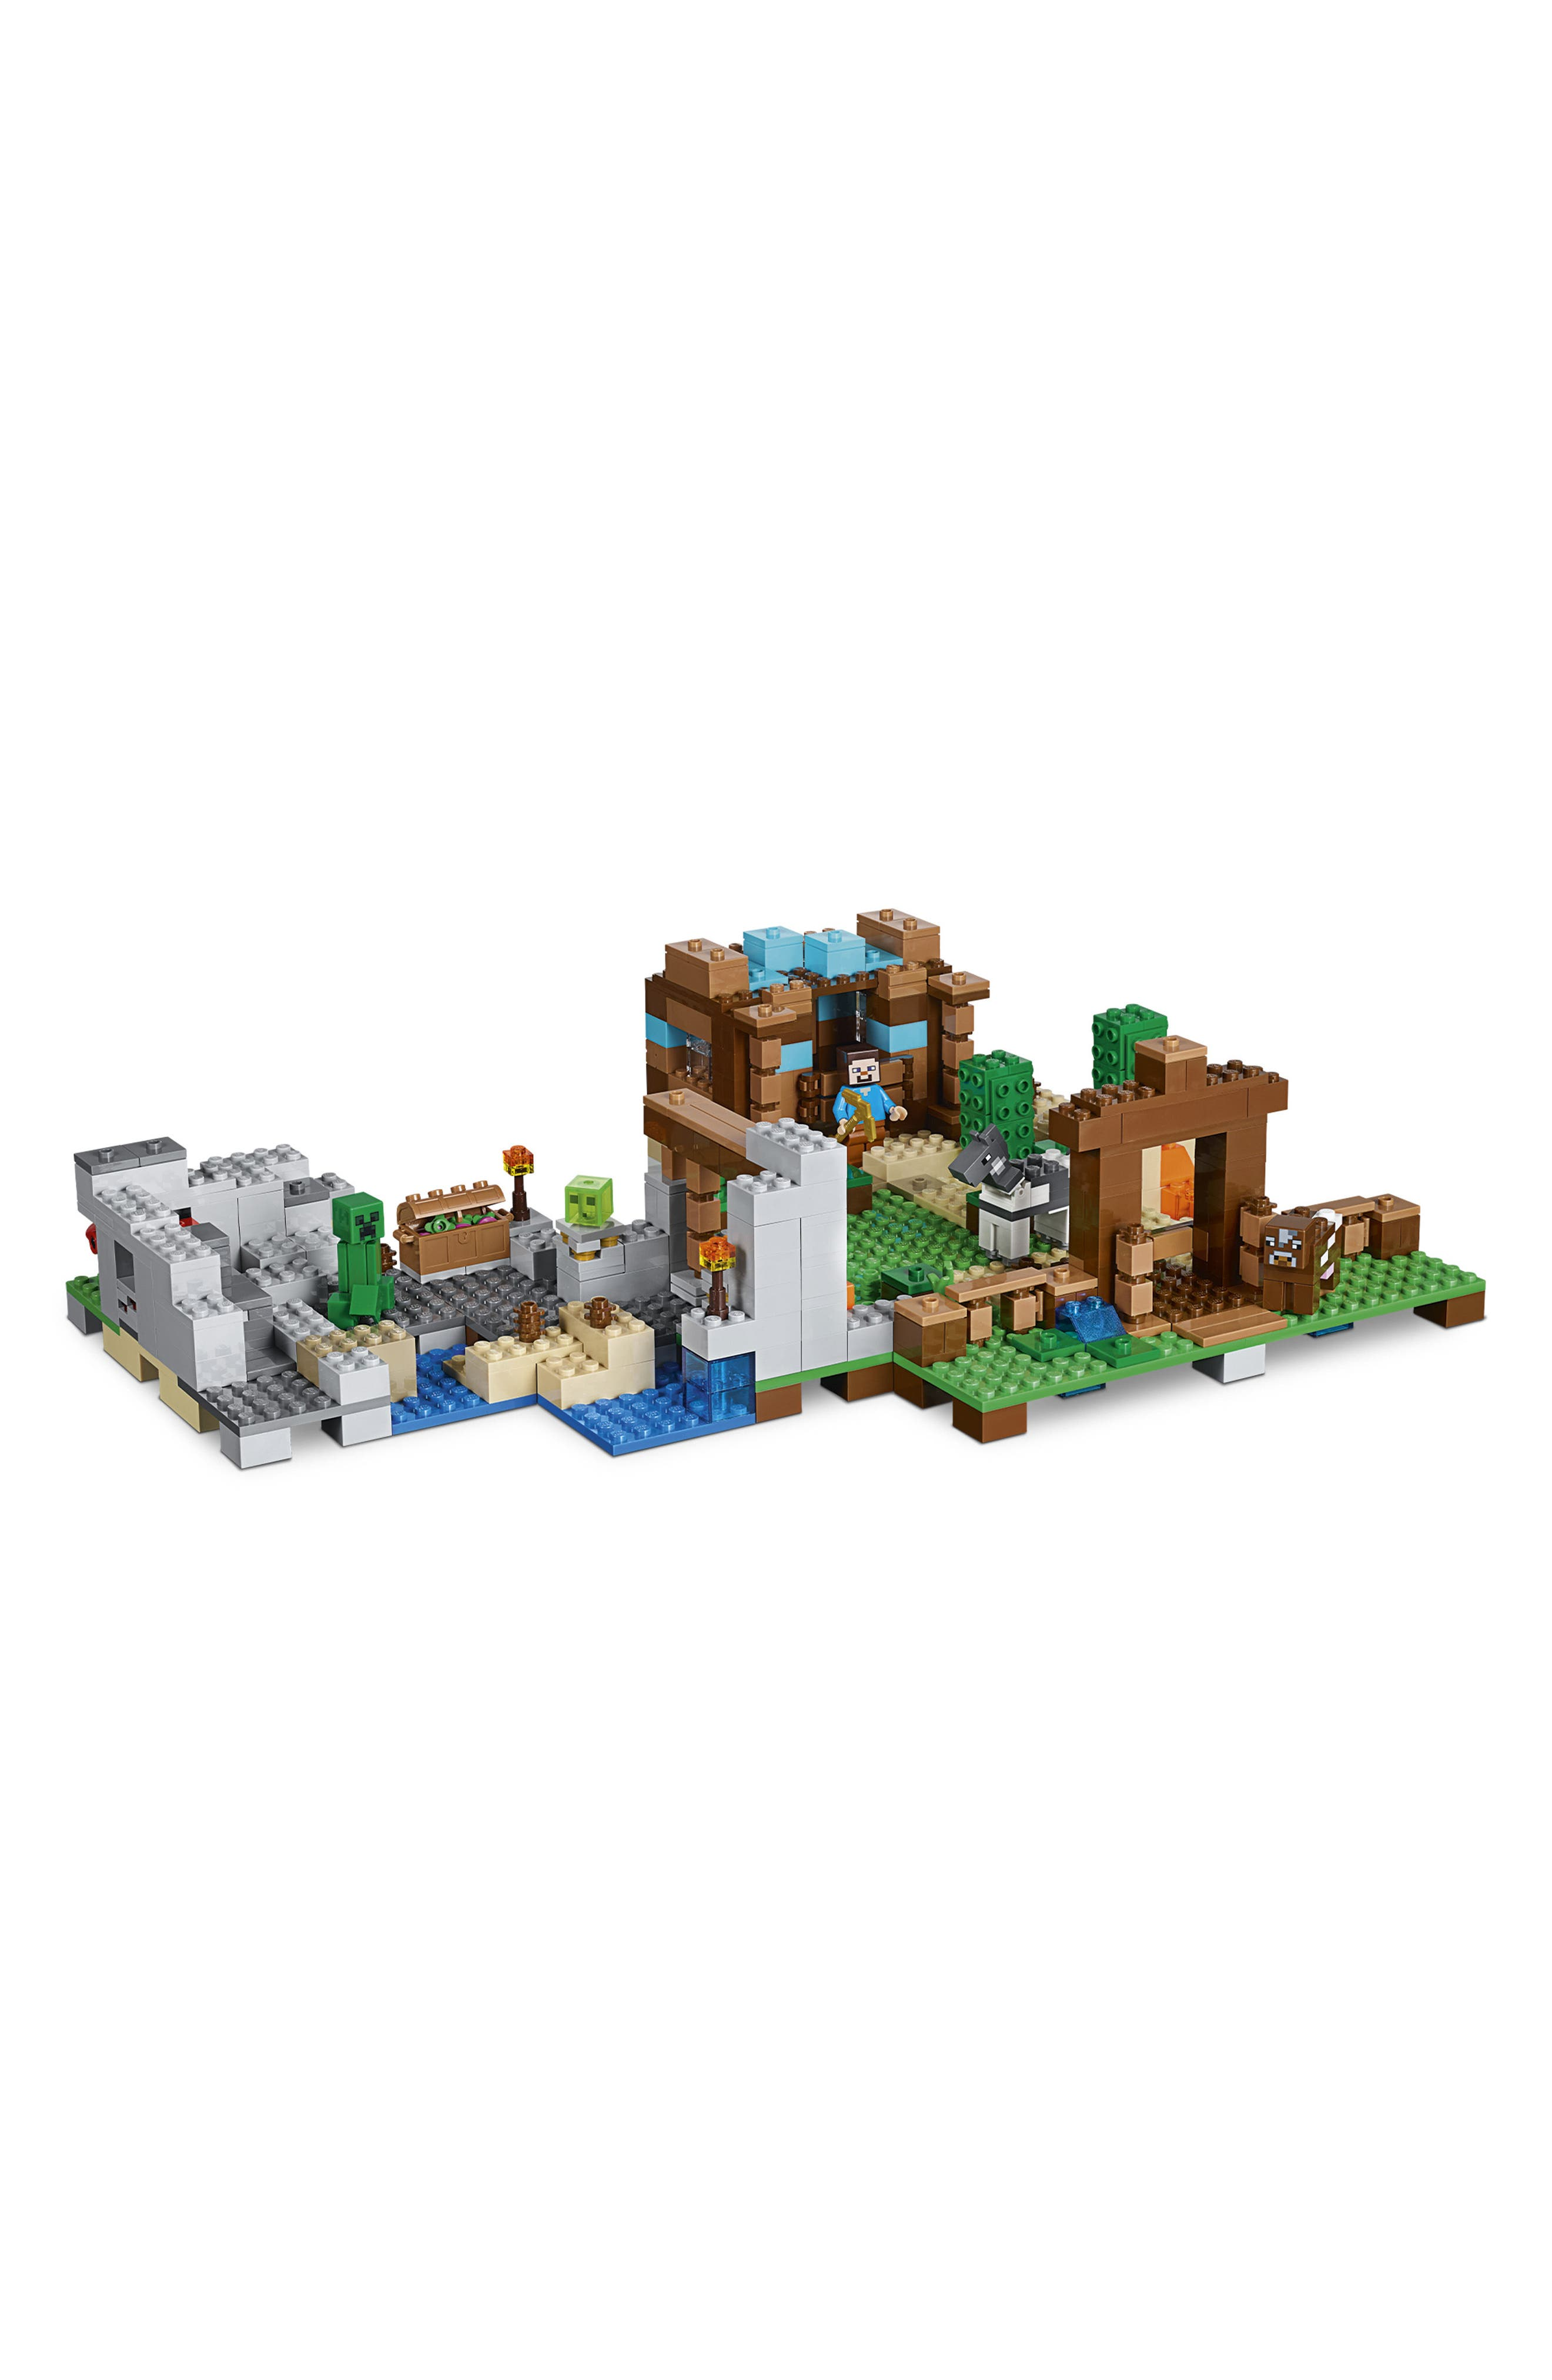 Minecraft<sup>™</sup> The Crafting Box 2.0 Play Set - 21135,                             Alternate thumbnail 2, color,                             020